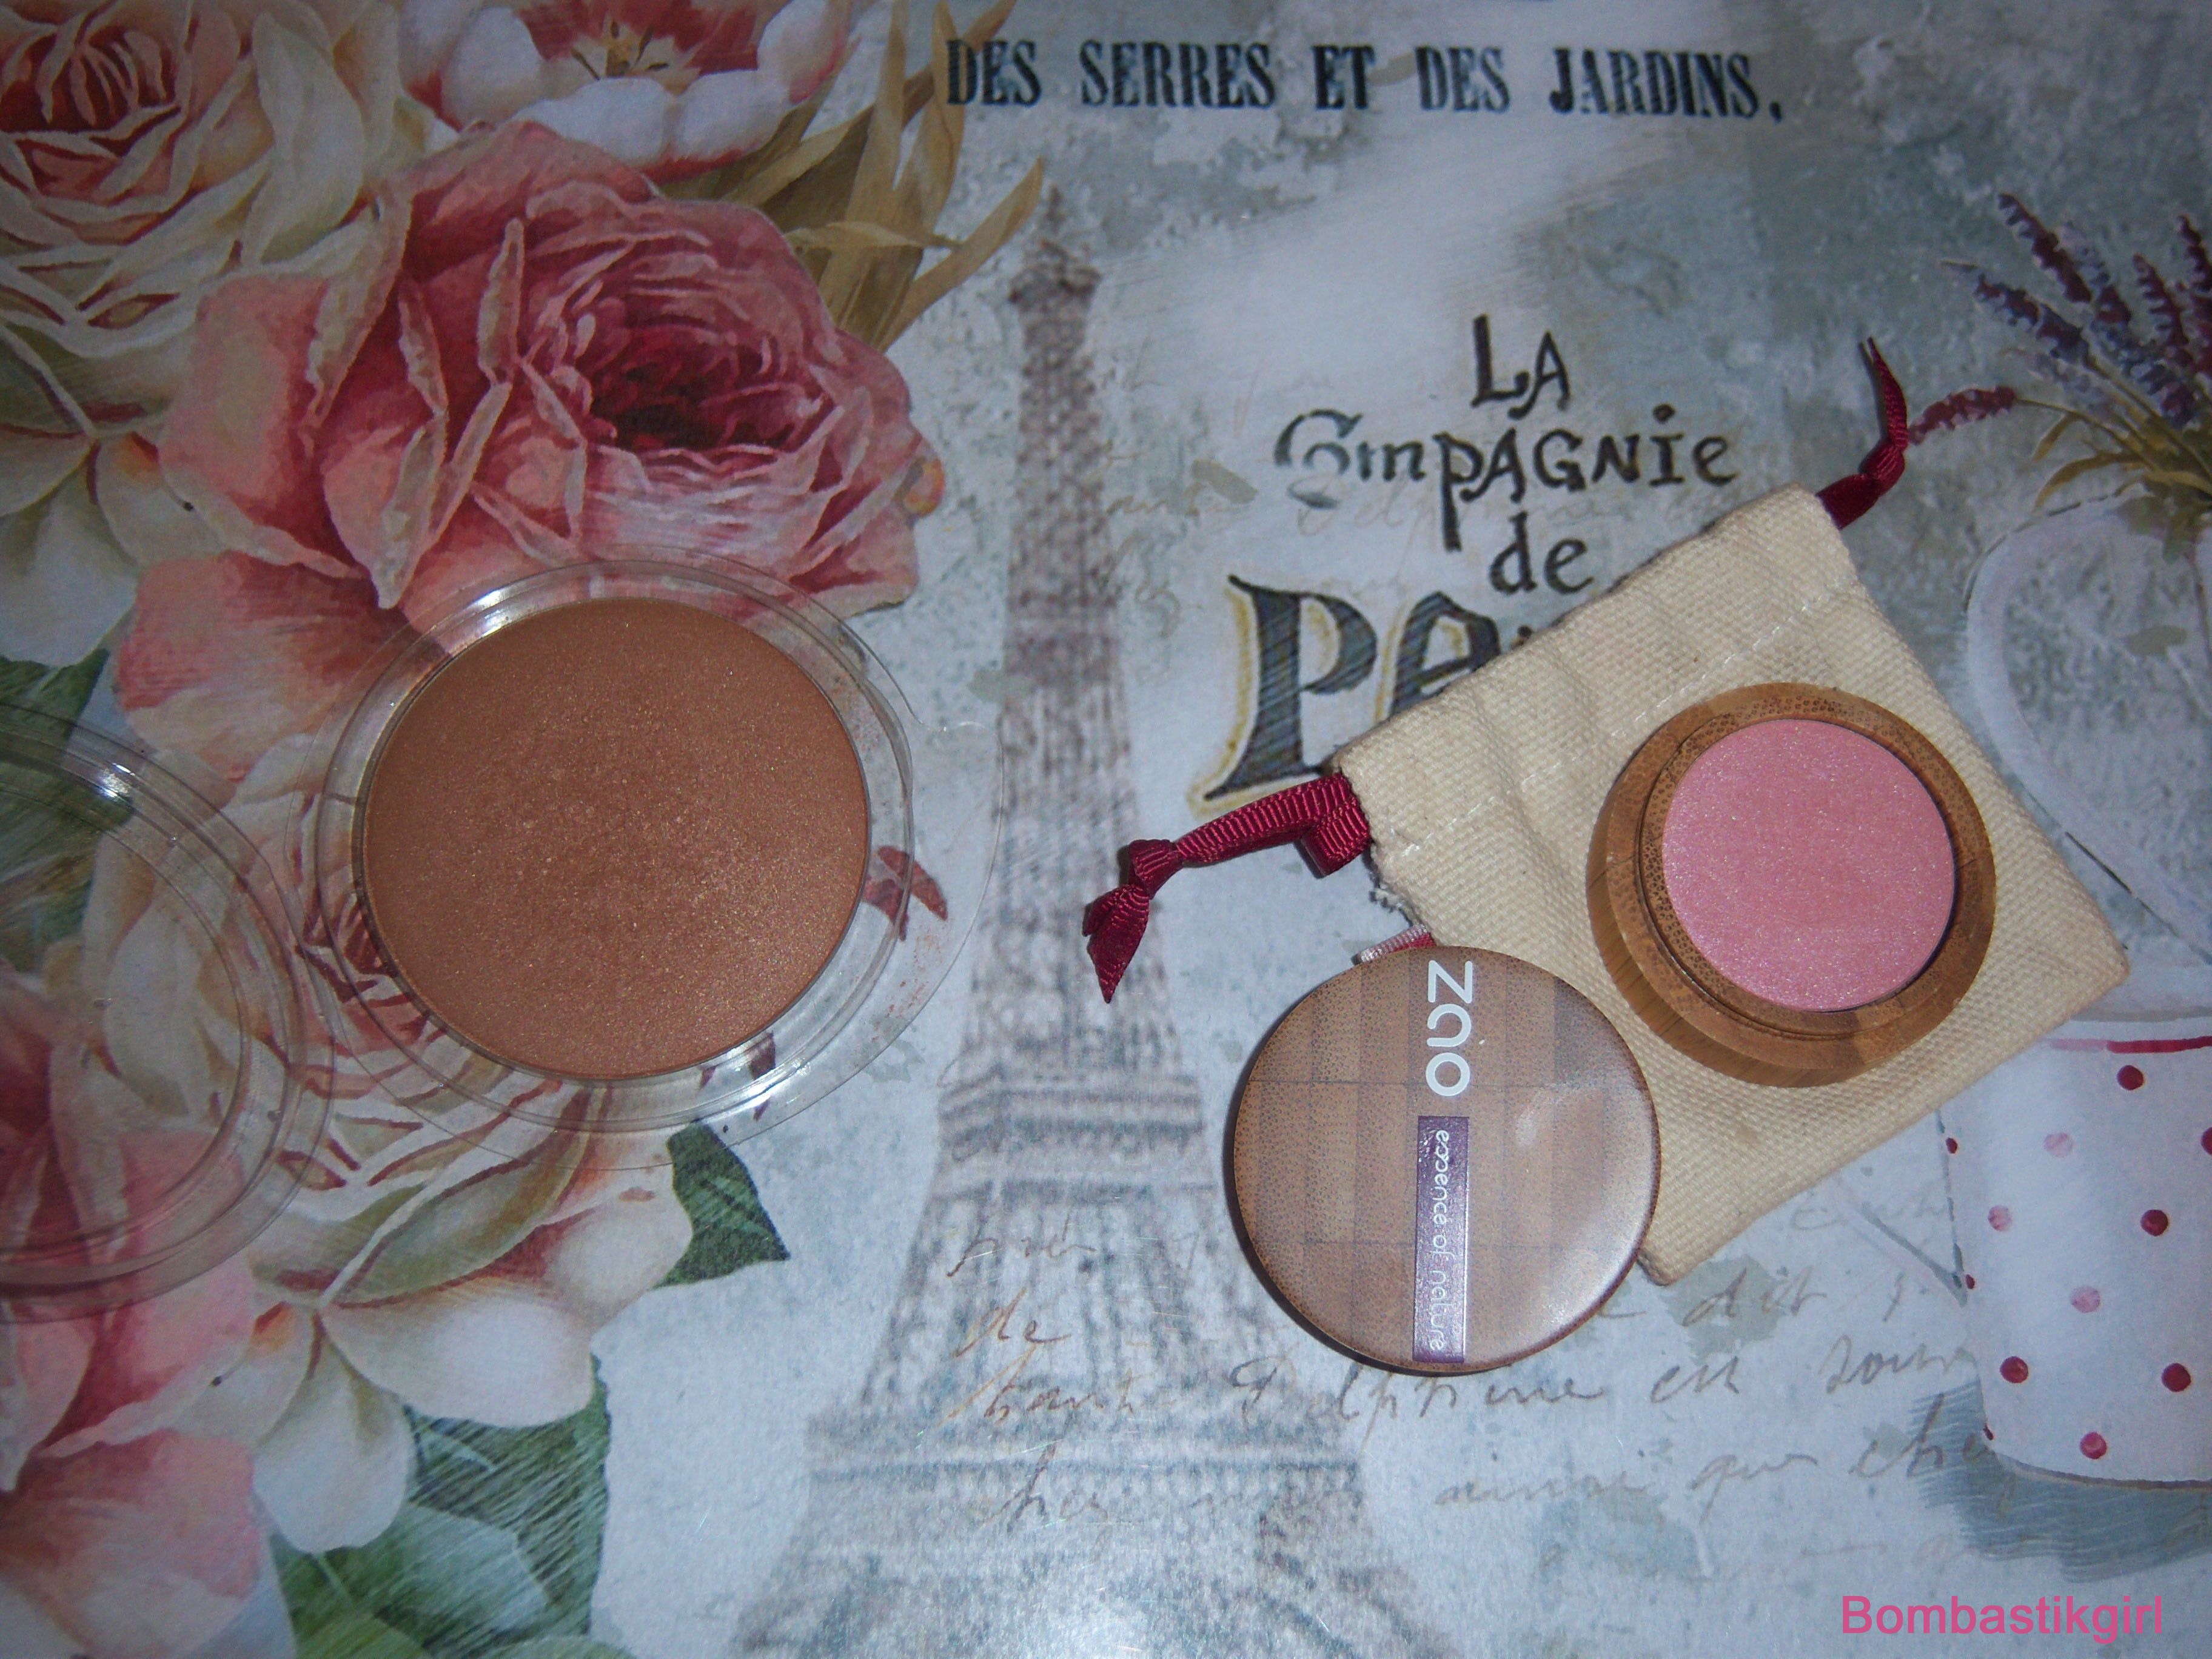 Du nouveau dans le maquillage :  Zao make up